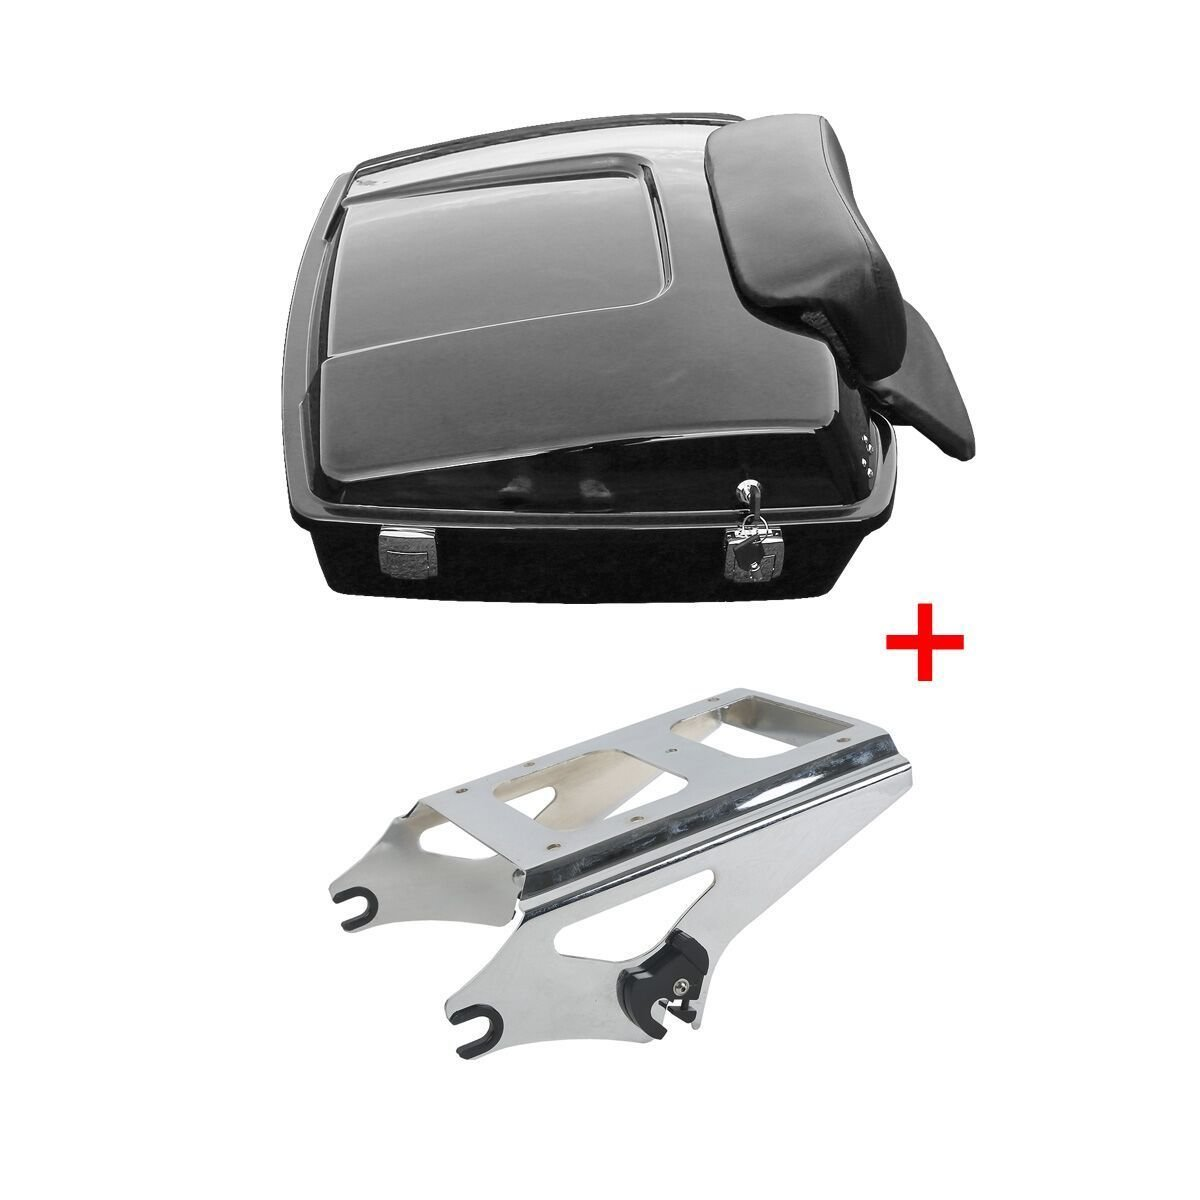 XFMT Razor Tour Pak Pack Trunk /& Mounting Rack For Harley Davidson Touring 2009-2013